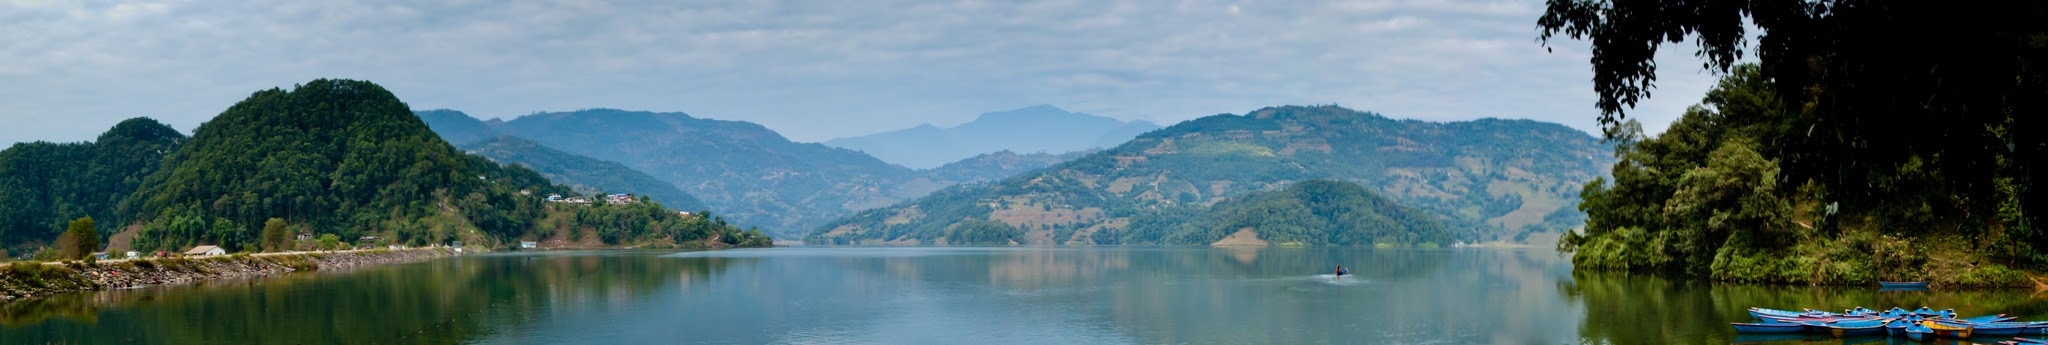 Photo: Begnas Lake Pano  Another #Panorama today for #WideWednesdayPanorama curated by +Jason Dell and +Charles Lupica .